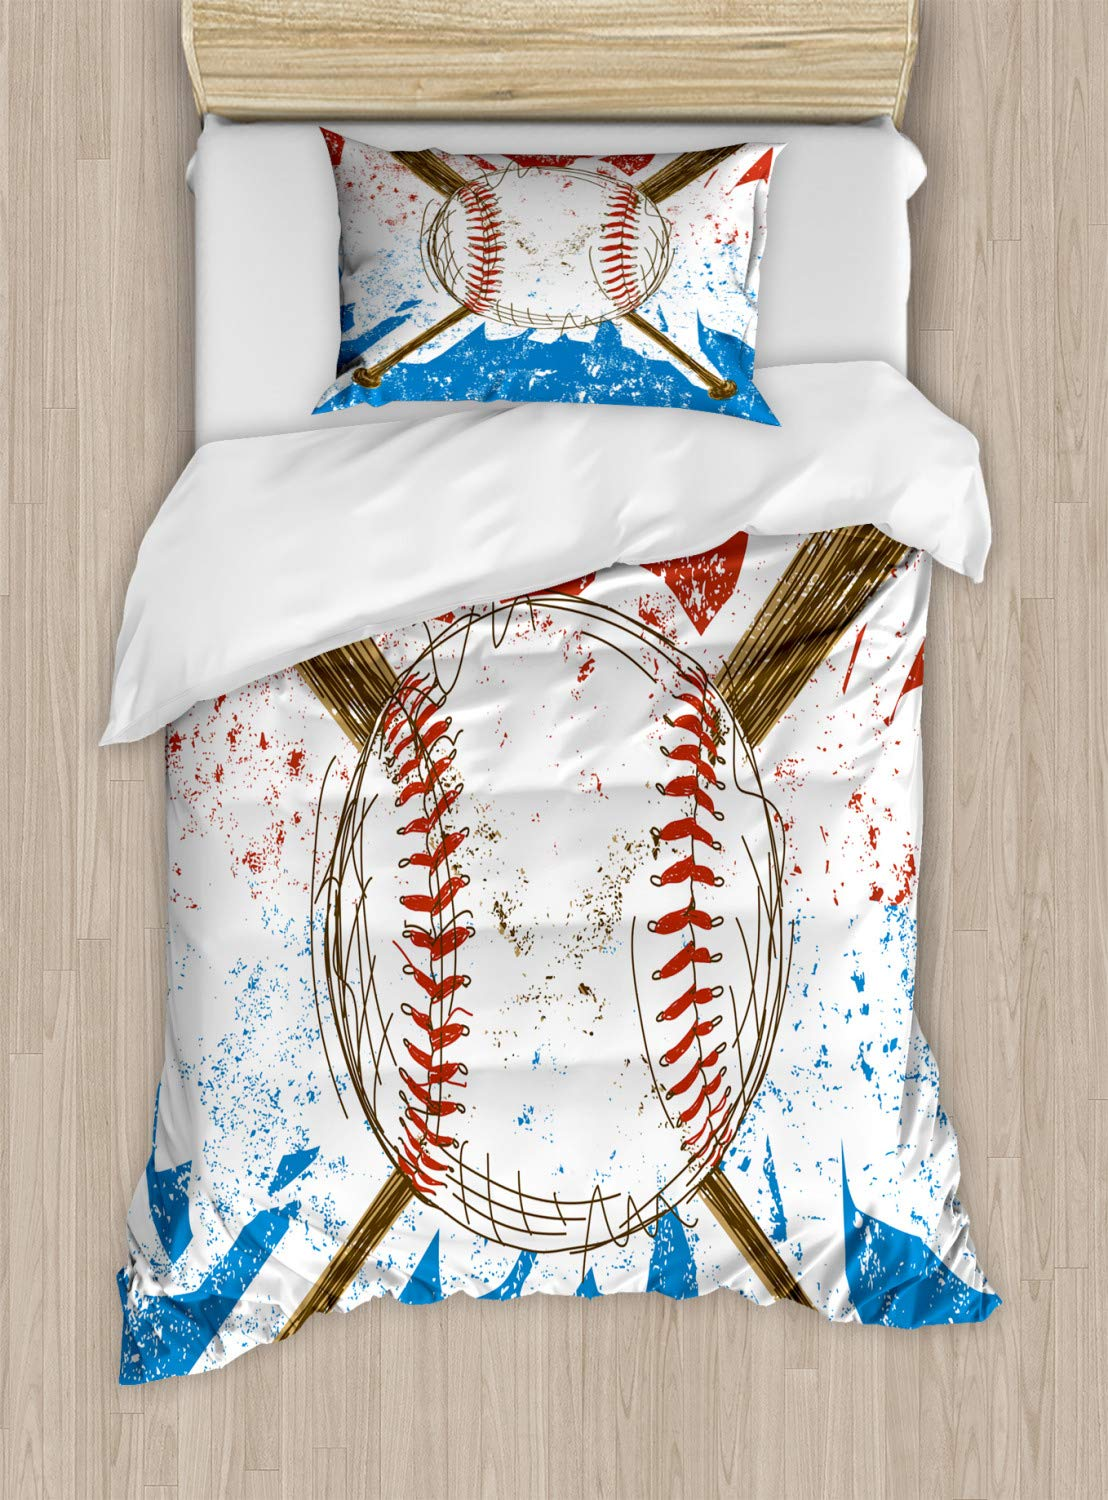 Lunarable Sports Duvet Cover Set, Hand Drawn Baseball Bats and Ball on Grunge Colored Background, Decorative 2 Piece Bedding Set with 1 Pillow Sham, Twin Size, Brown Blue